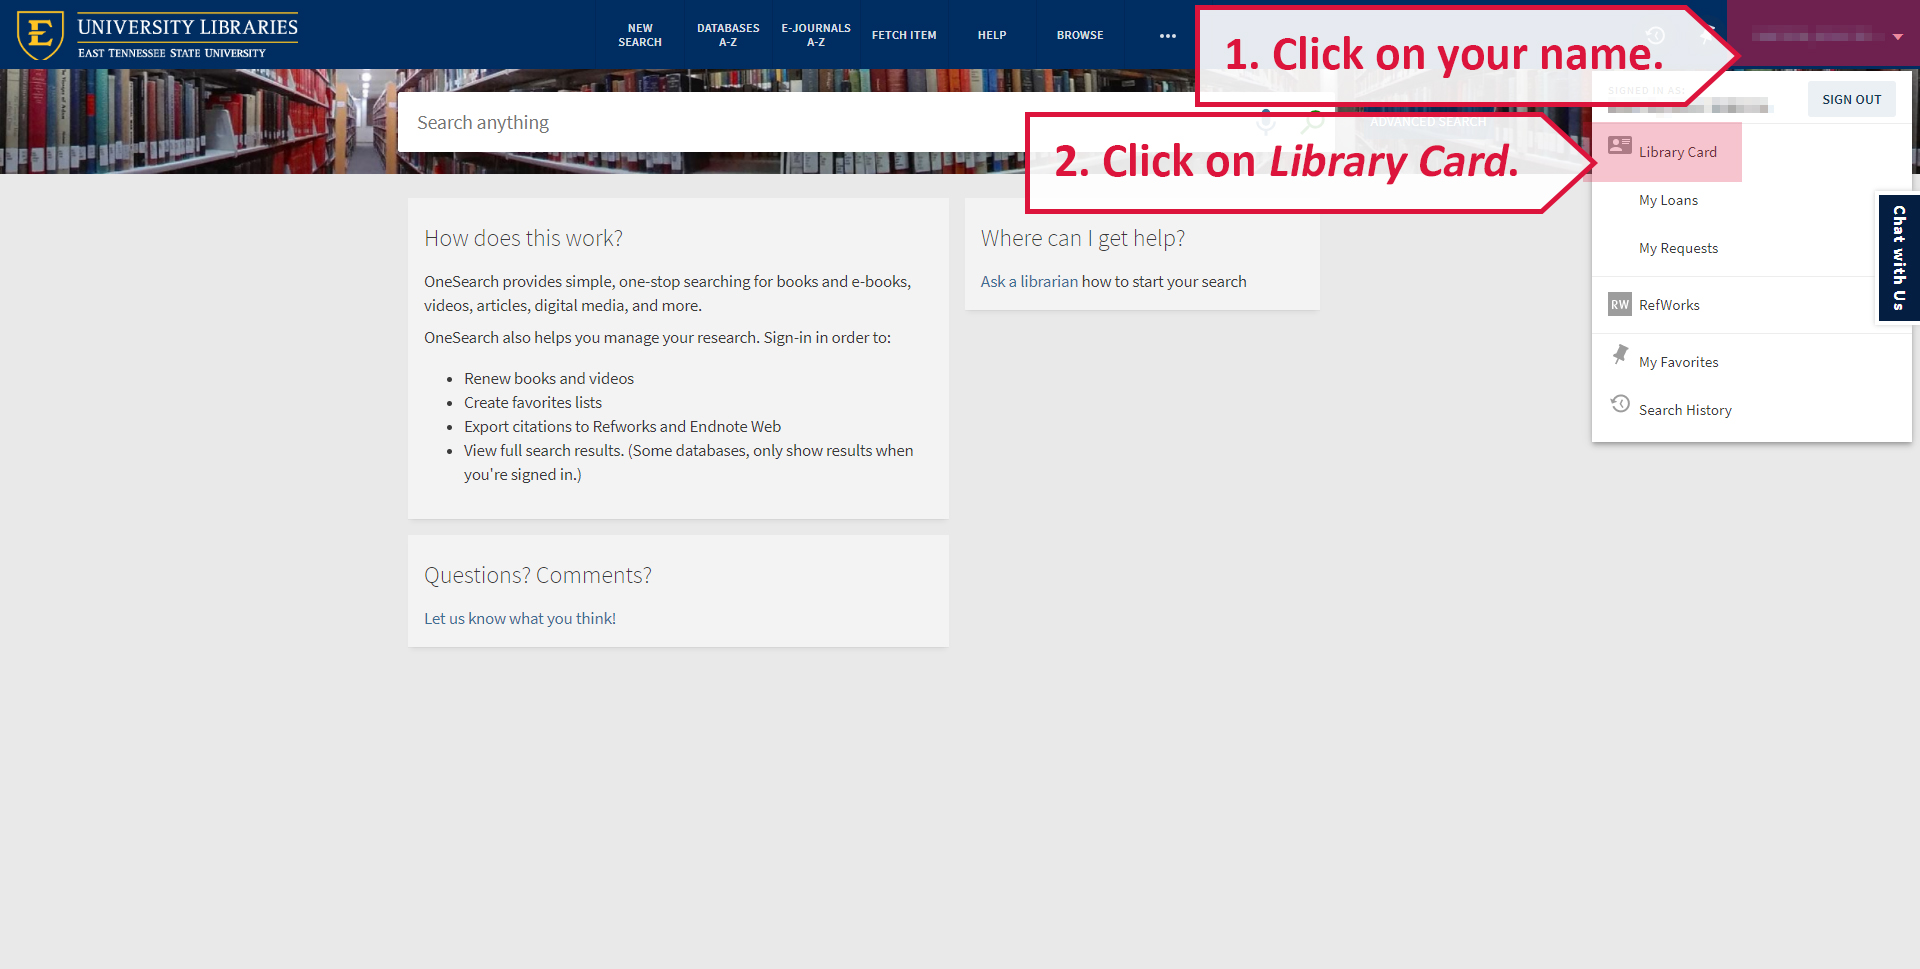 A screenshot illustrating how to access your personal details in your library account.